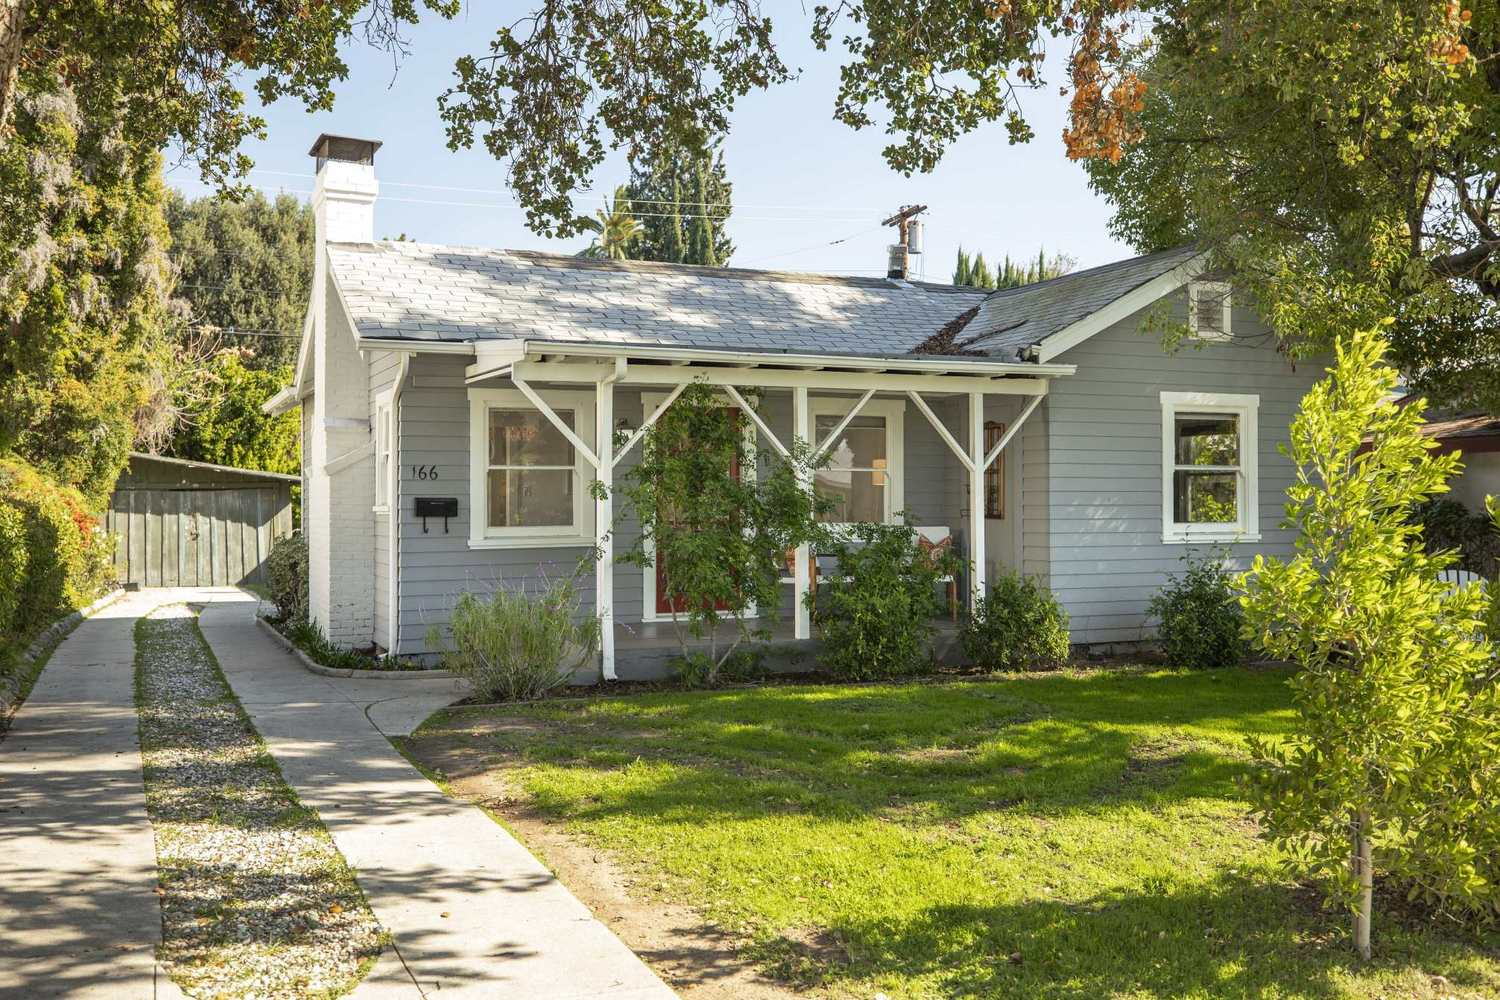 166 South Parkwood Avenue Pasadena, CA 91107